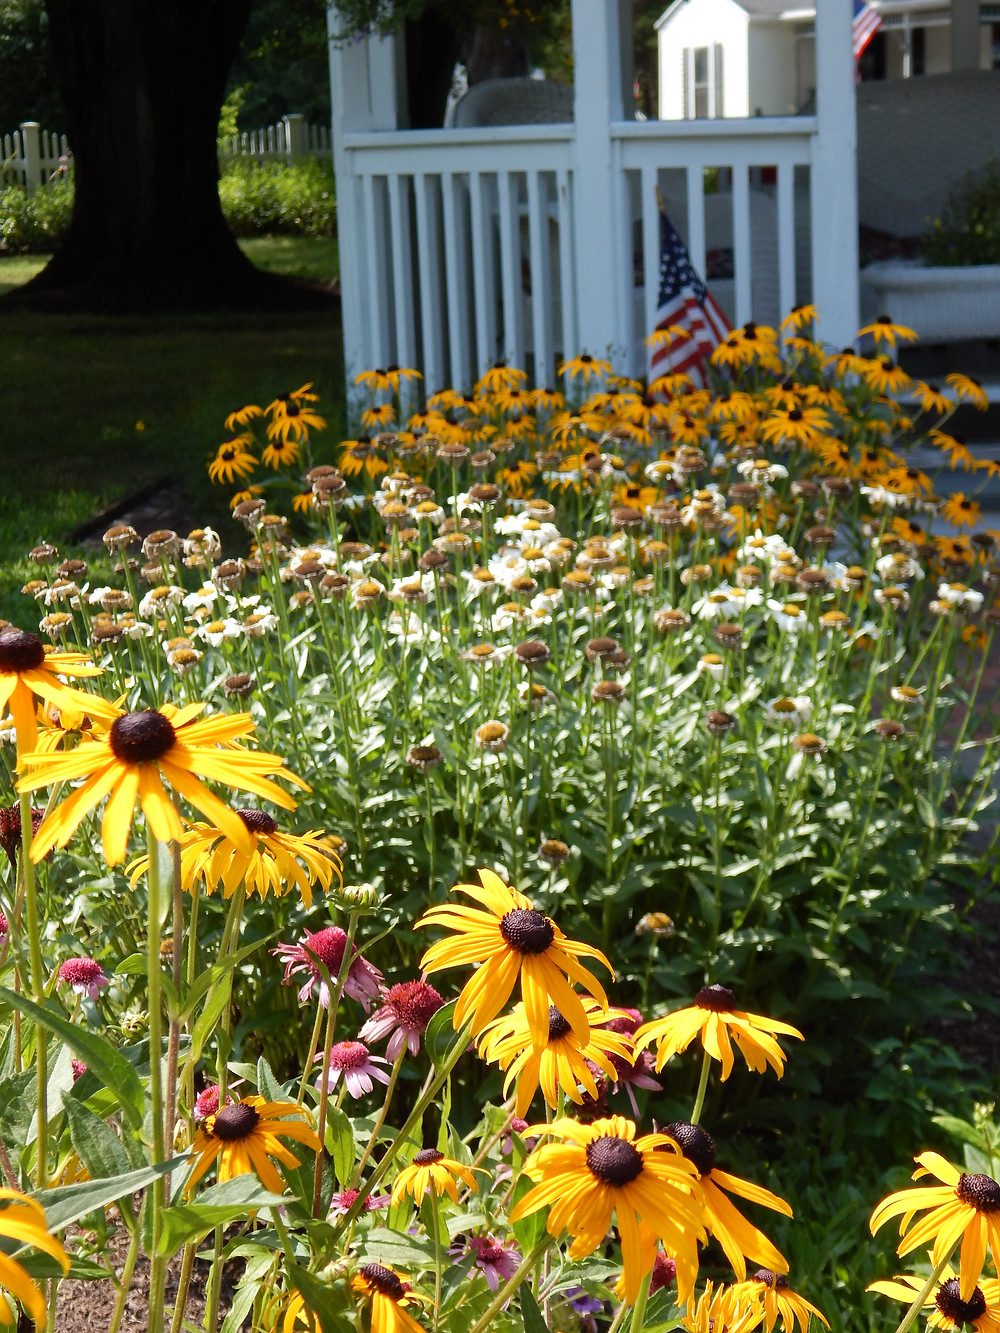 White picket fences and flowers at the Old Mystic Inn